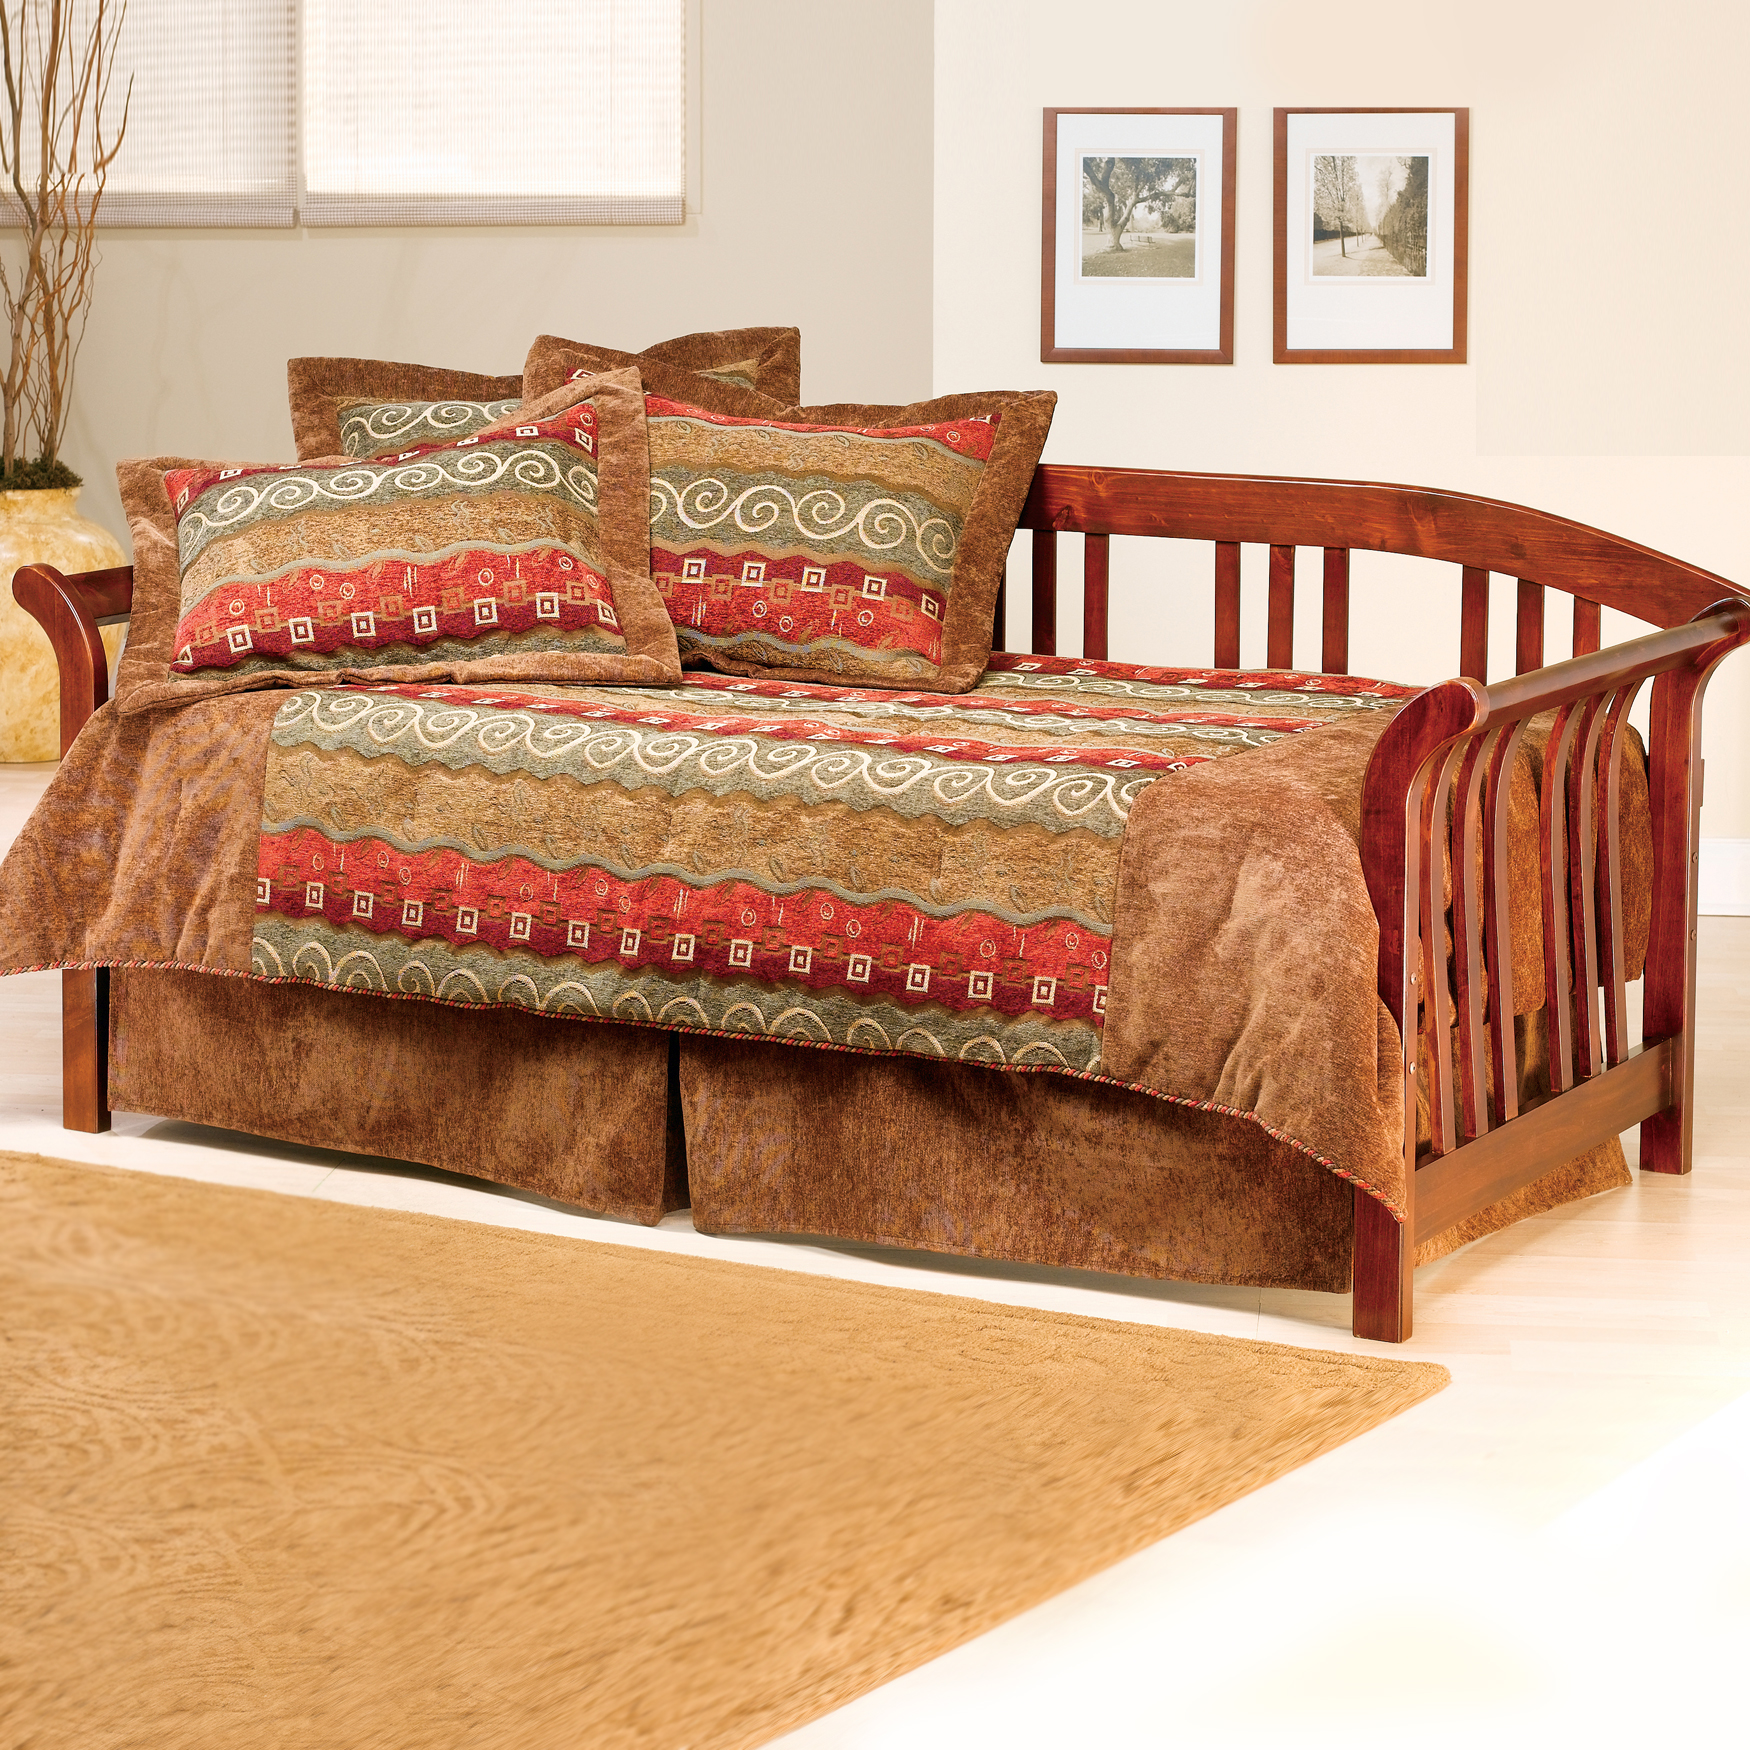 Dorchester Daybed with Suspension Deck and Roll Out Trundle, BROWN CHERRY